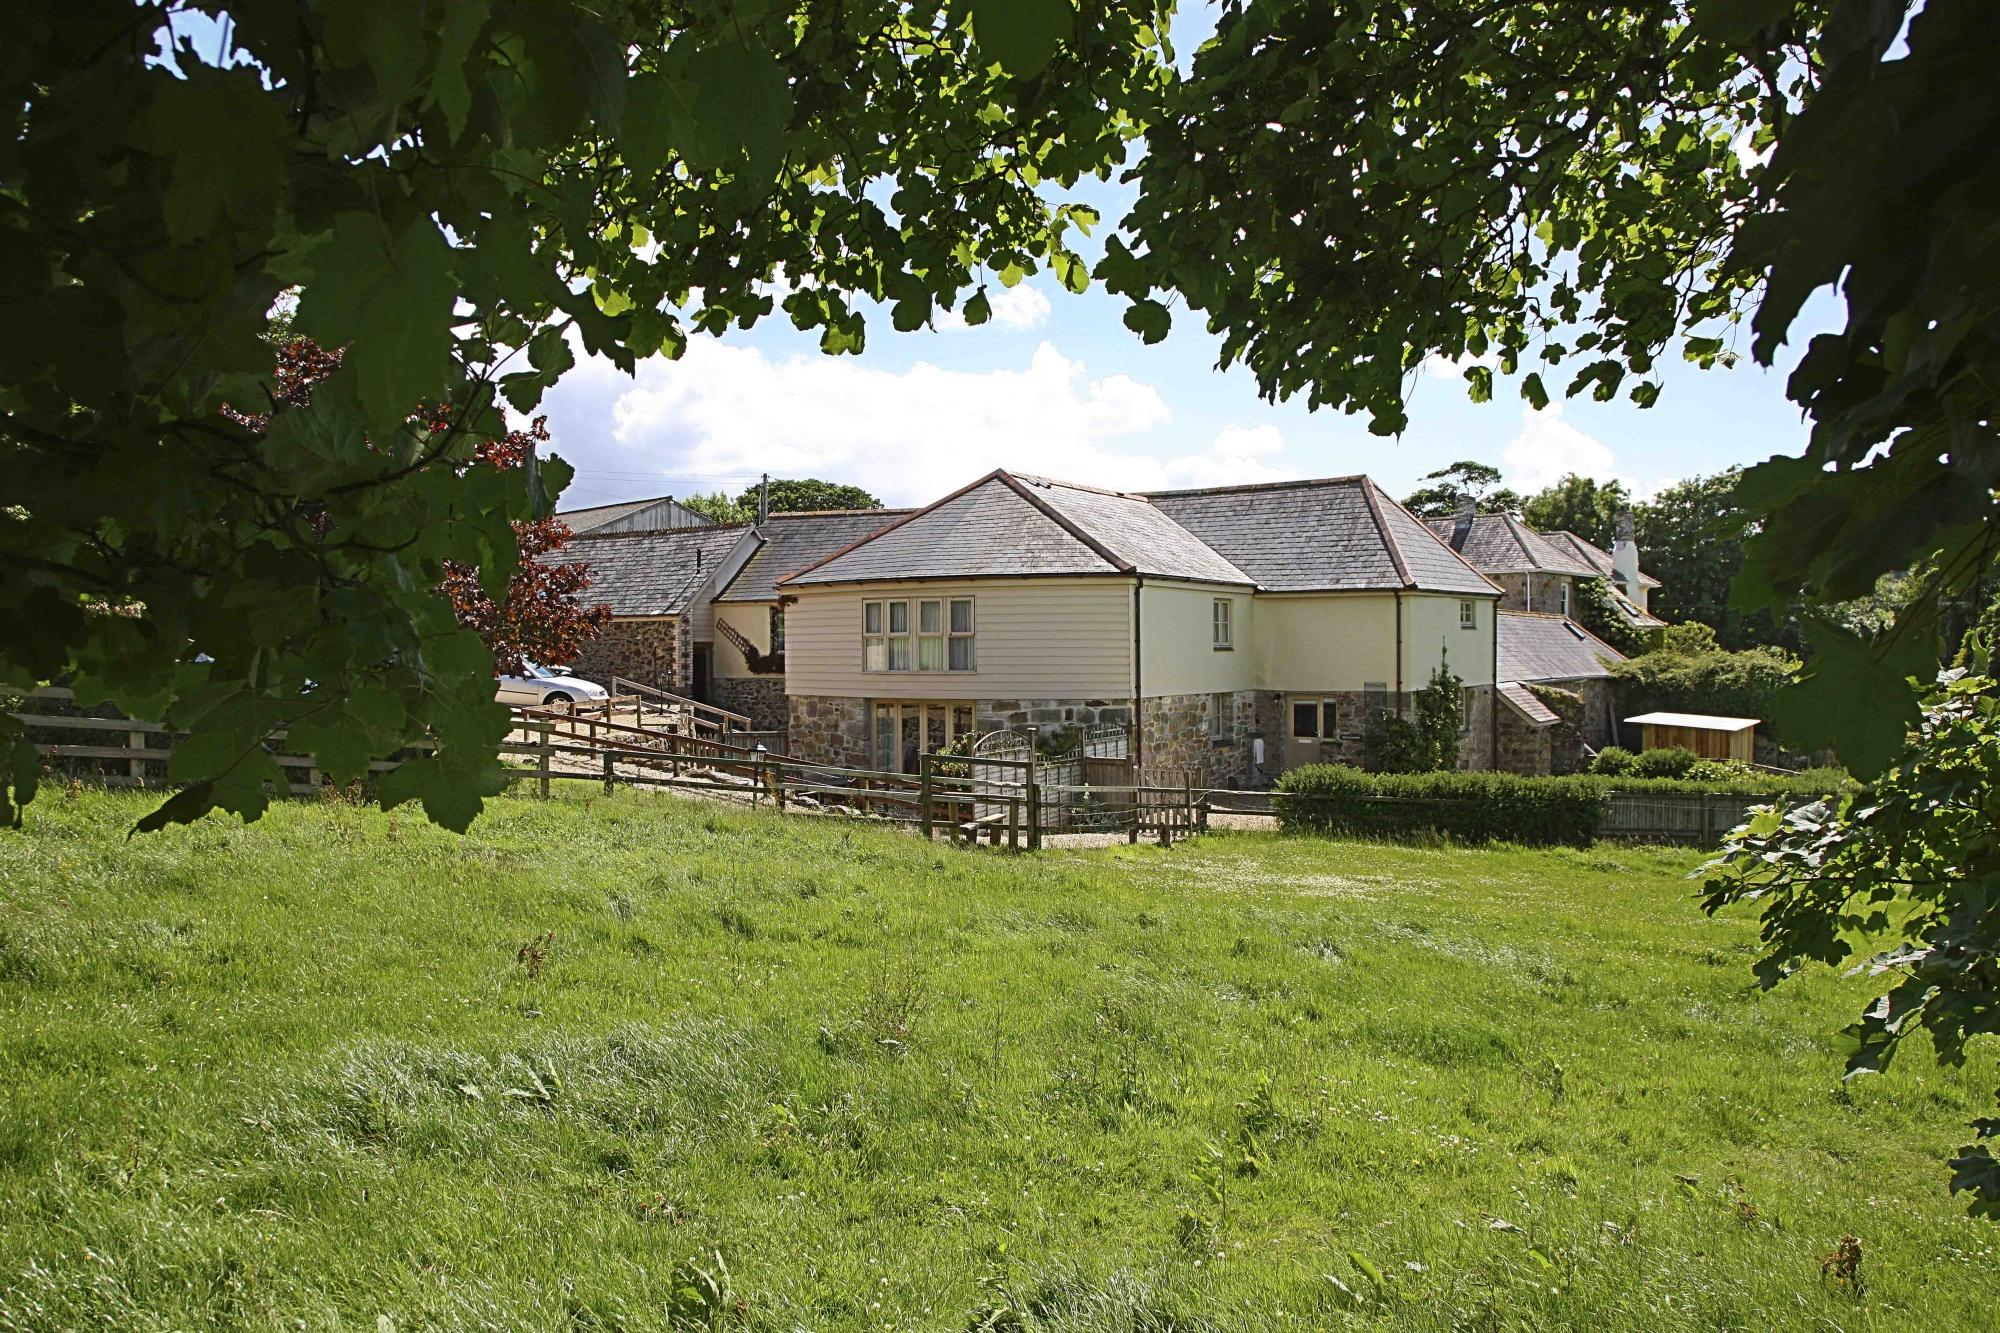 Tregongeeves Farm Cottages